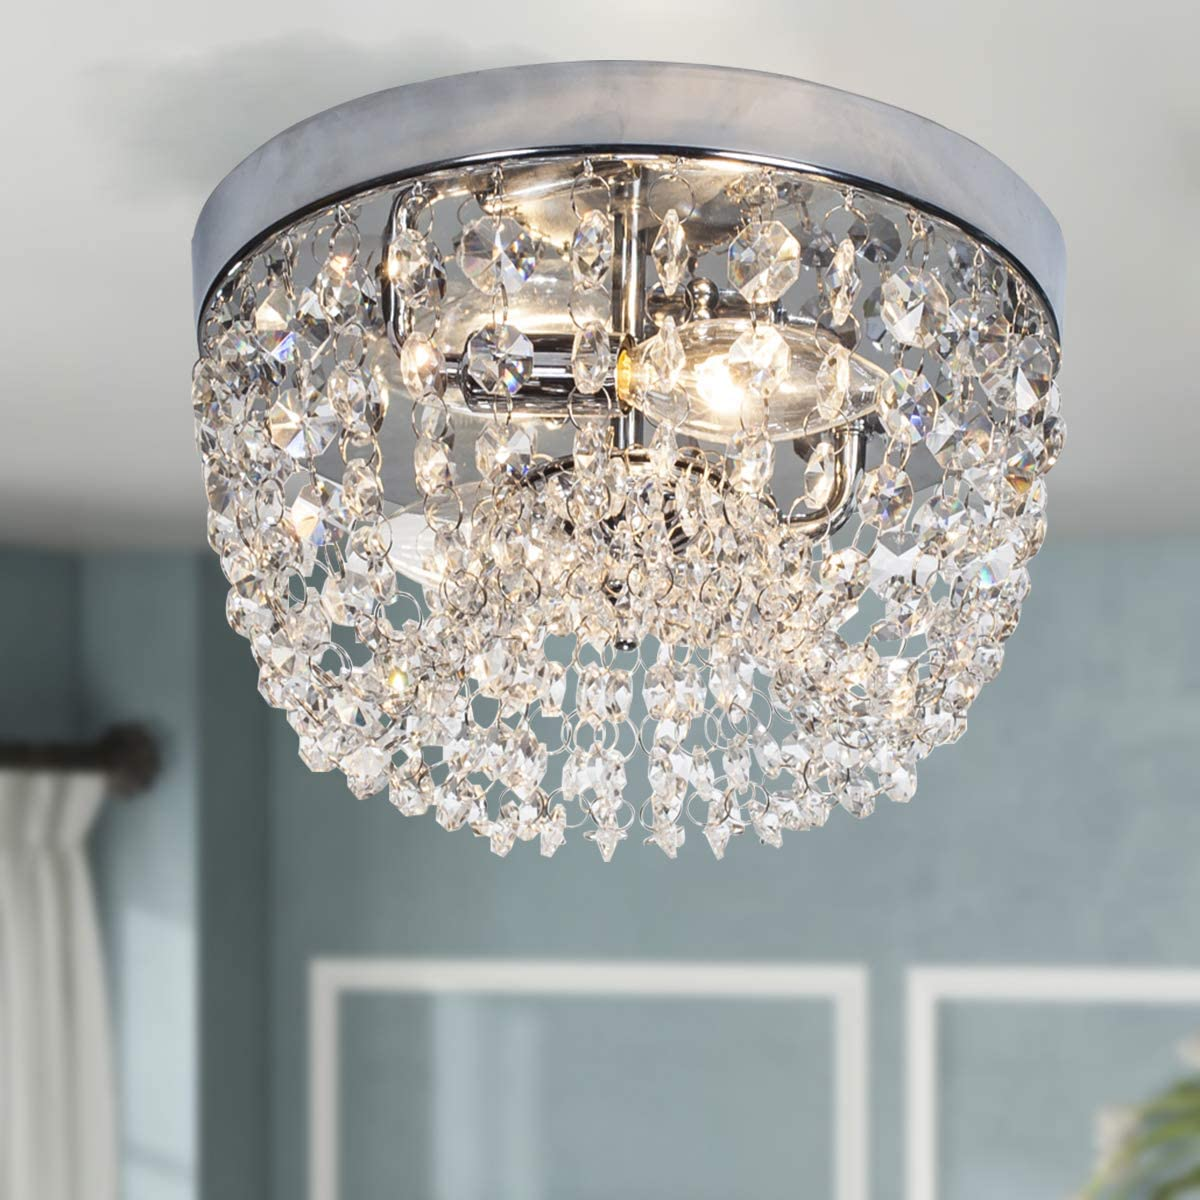 GLANZHAUS Small Style 9.84 Chrome Finish Clear Cystal Chandelier, 2-Light Flush Mount Ceiling Light For Hallway Bar Kitchen Dining Room Kids Room